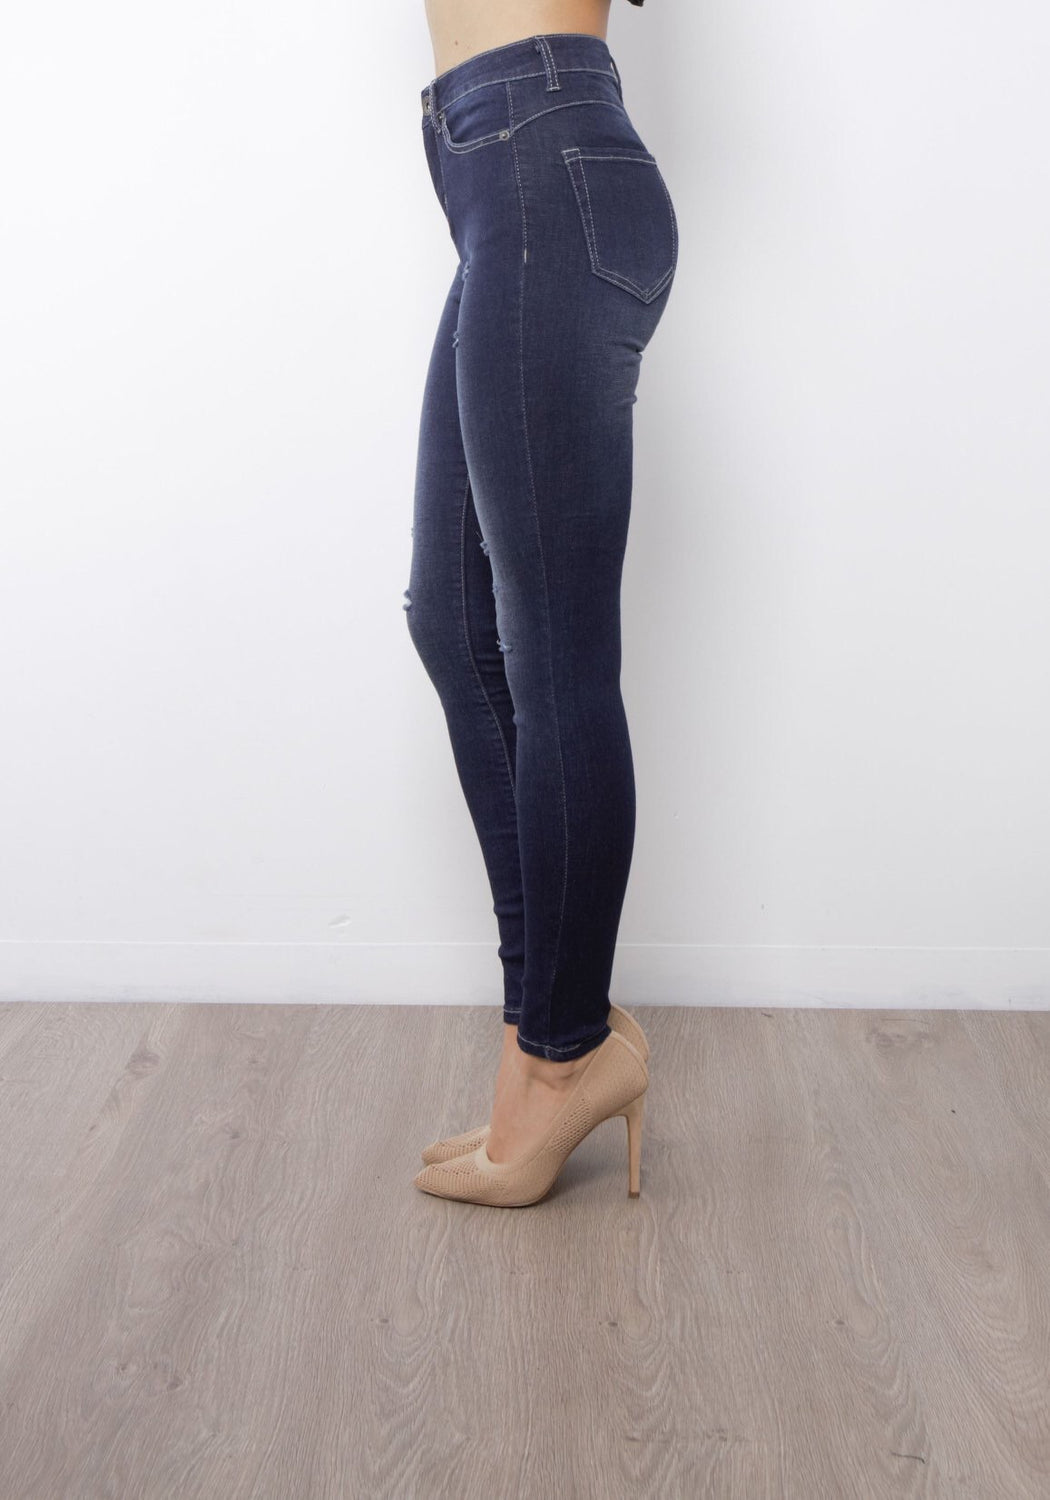 The Kylie Ink Wash High Waisted Jeans